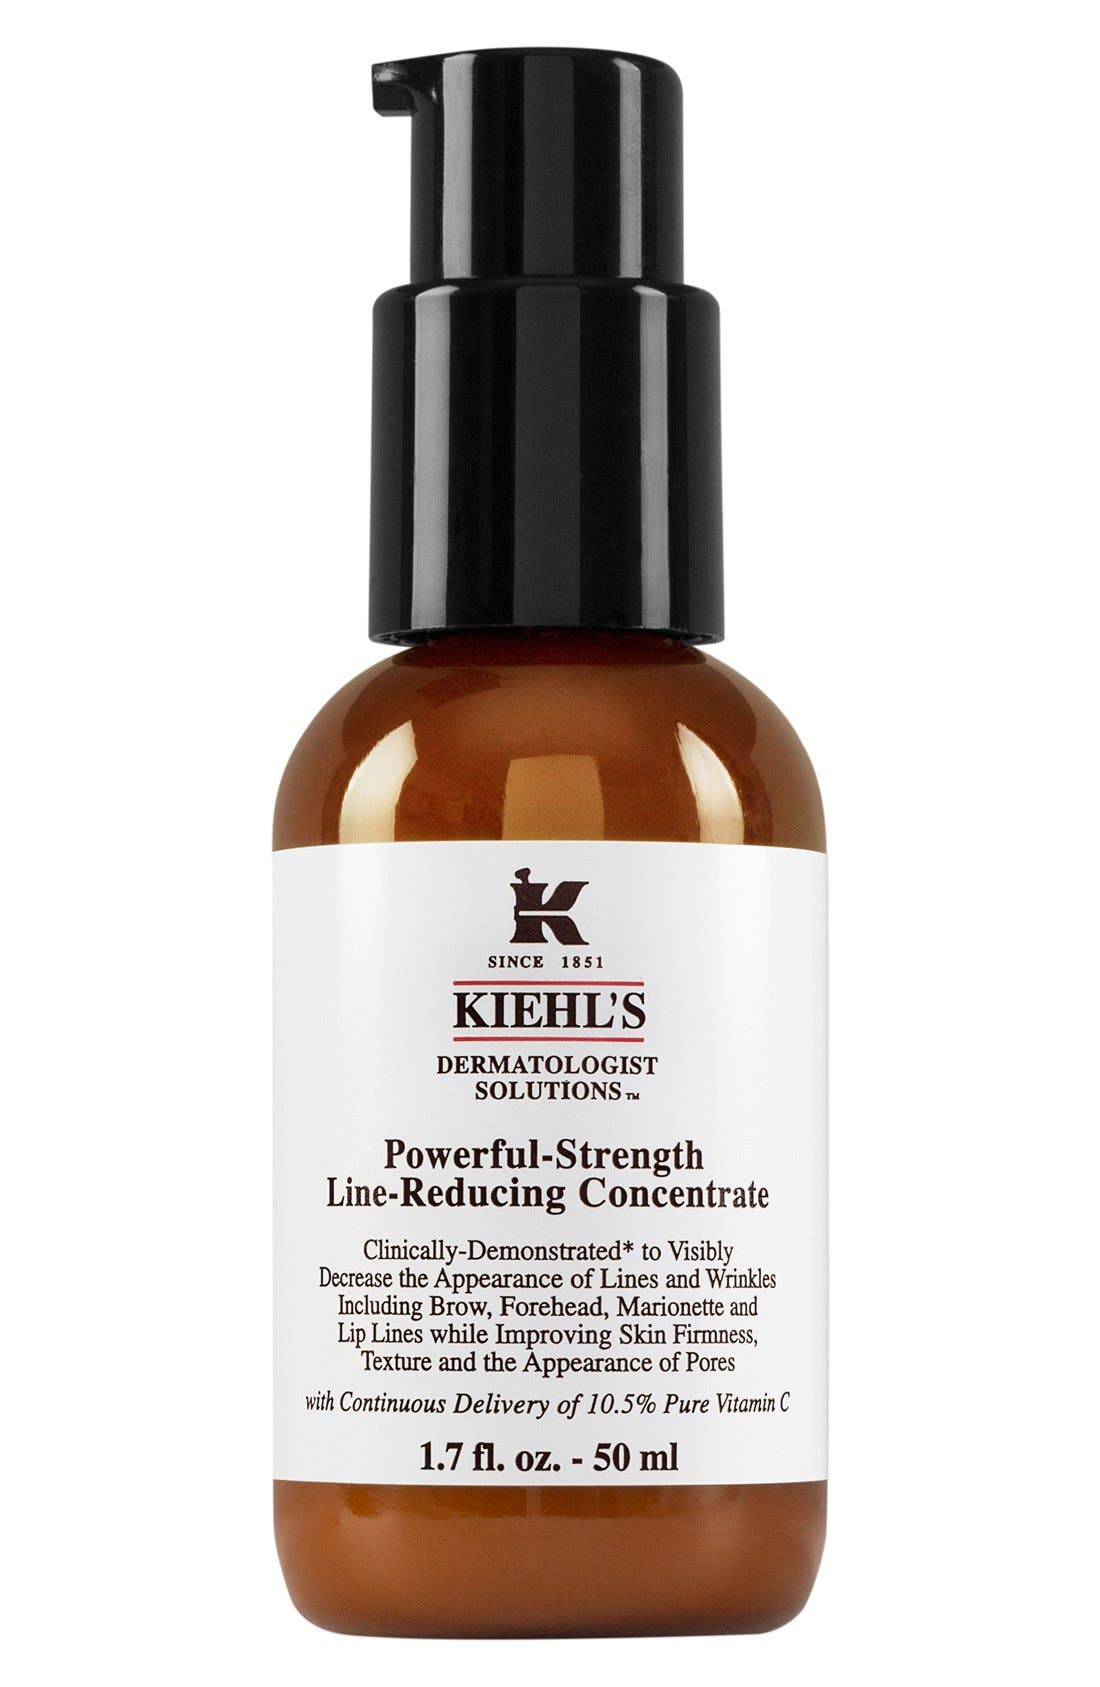 Kiehl's Since 1851 'Powerful-Strength' Line-Reducing Concentrate